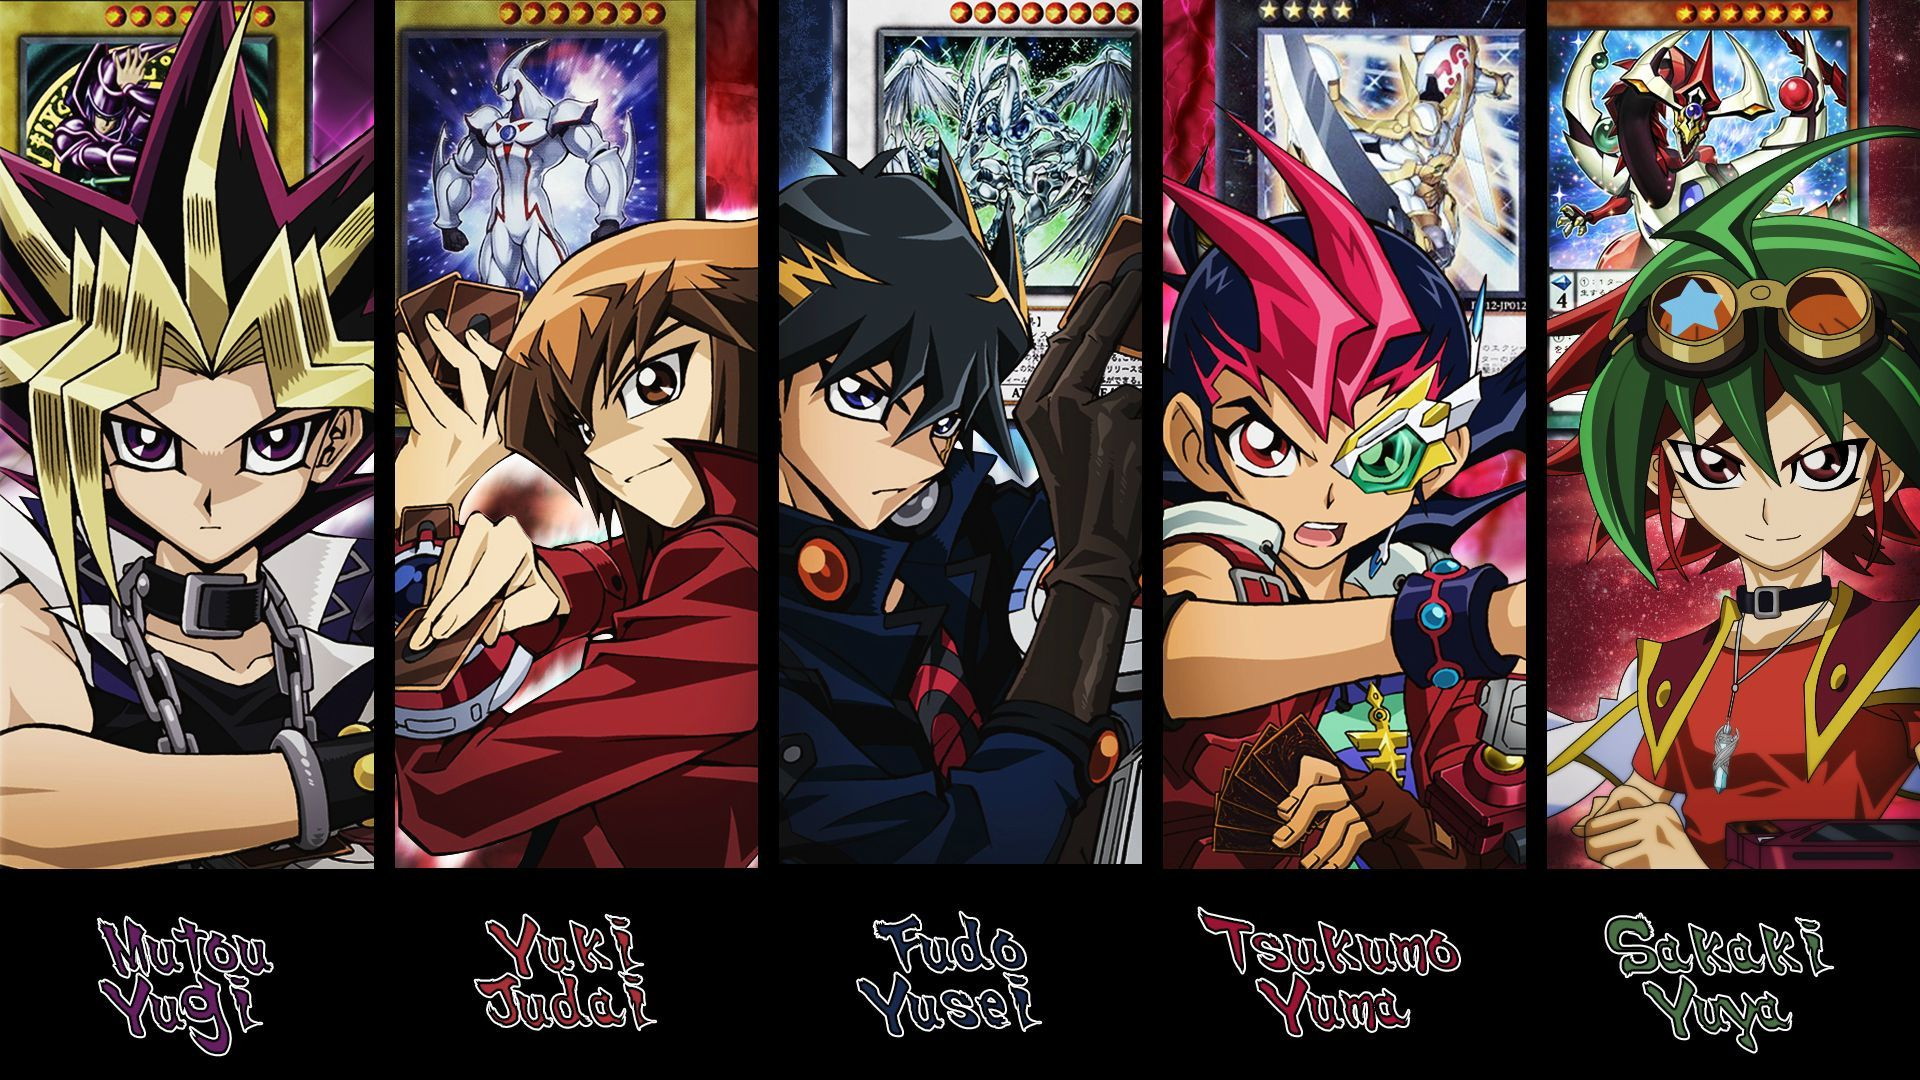 Yu Gi Oh HD Wallpaper Background 40146 Wallur 1920x1080